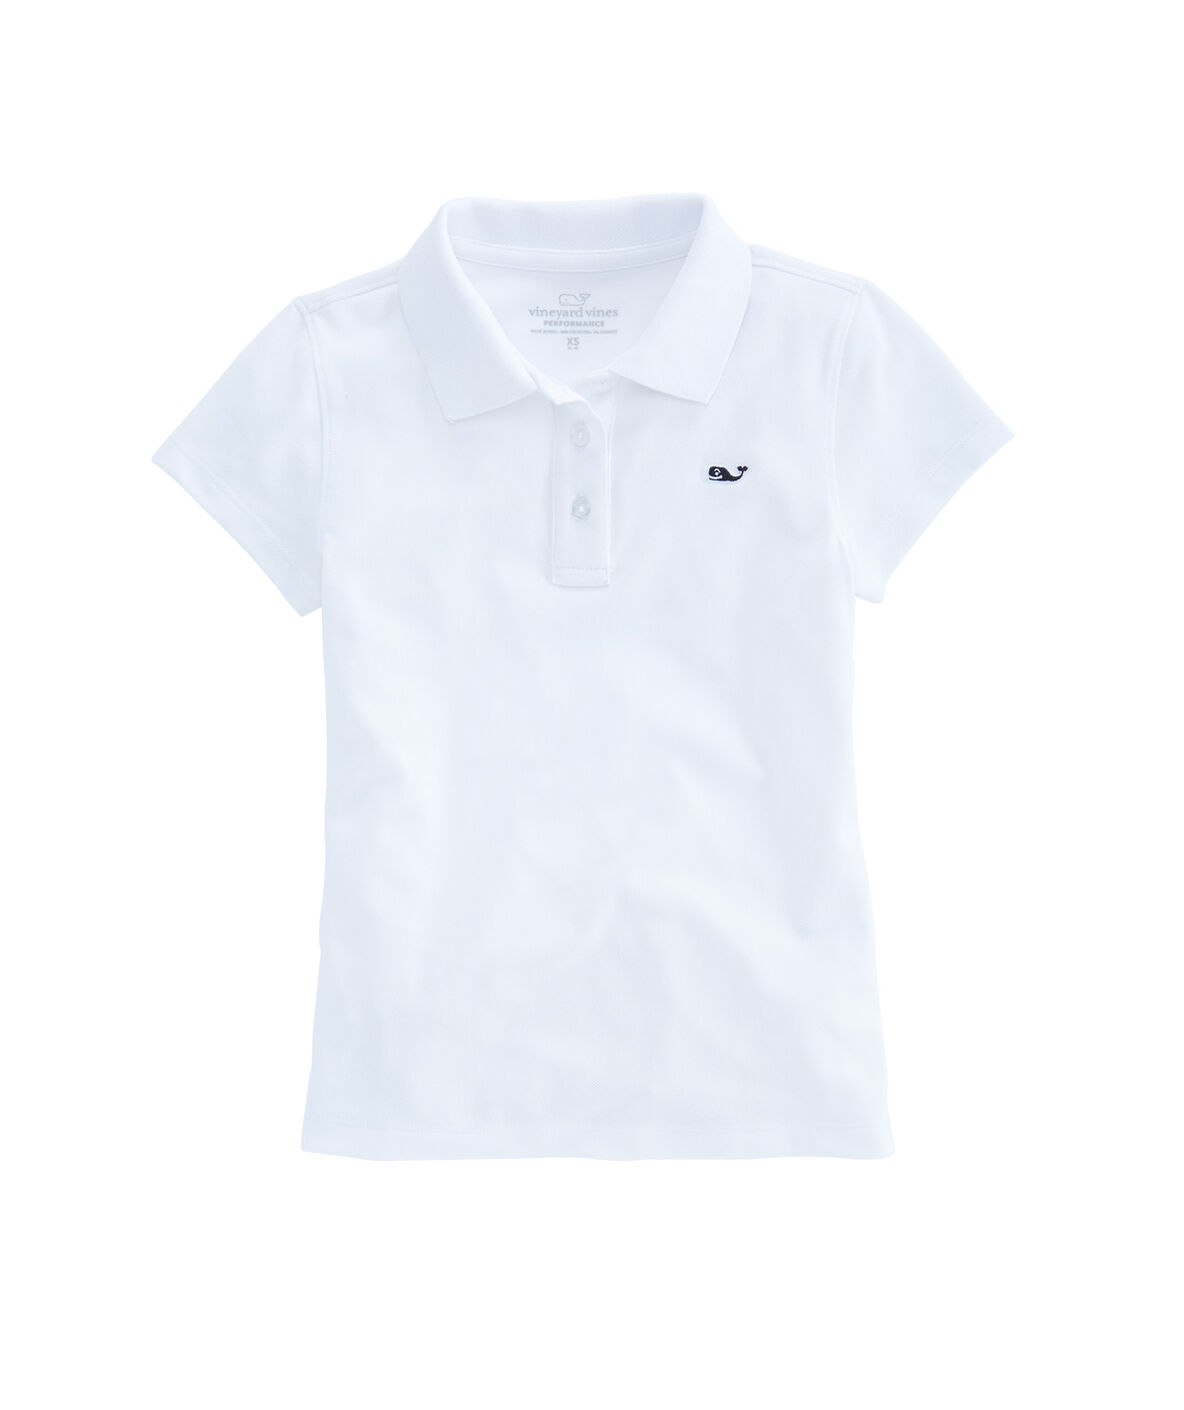 Shop Girls Performance Club Polo At Vineyard Vines